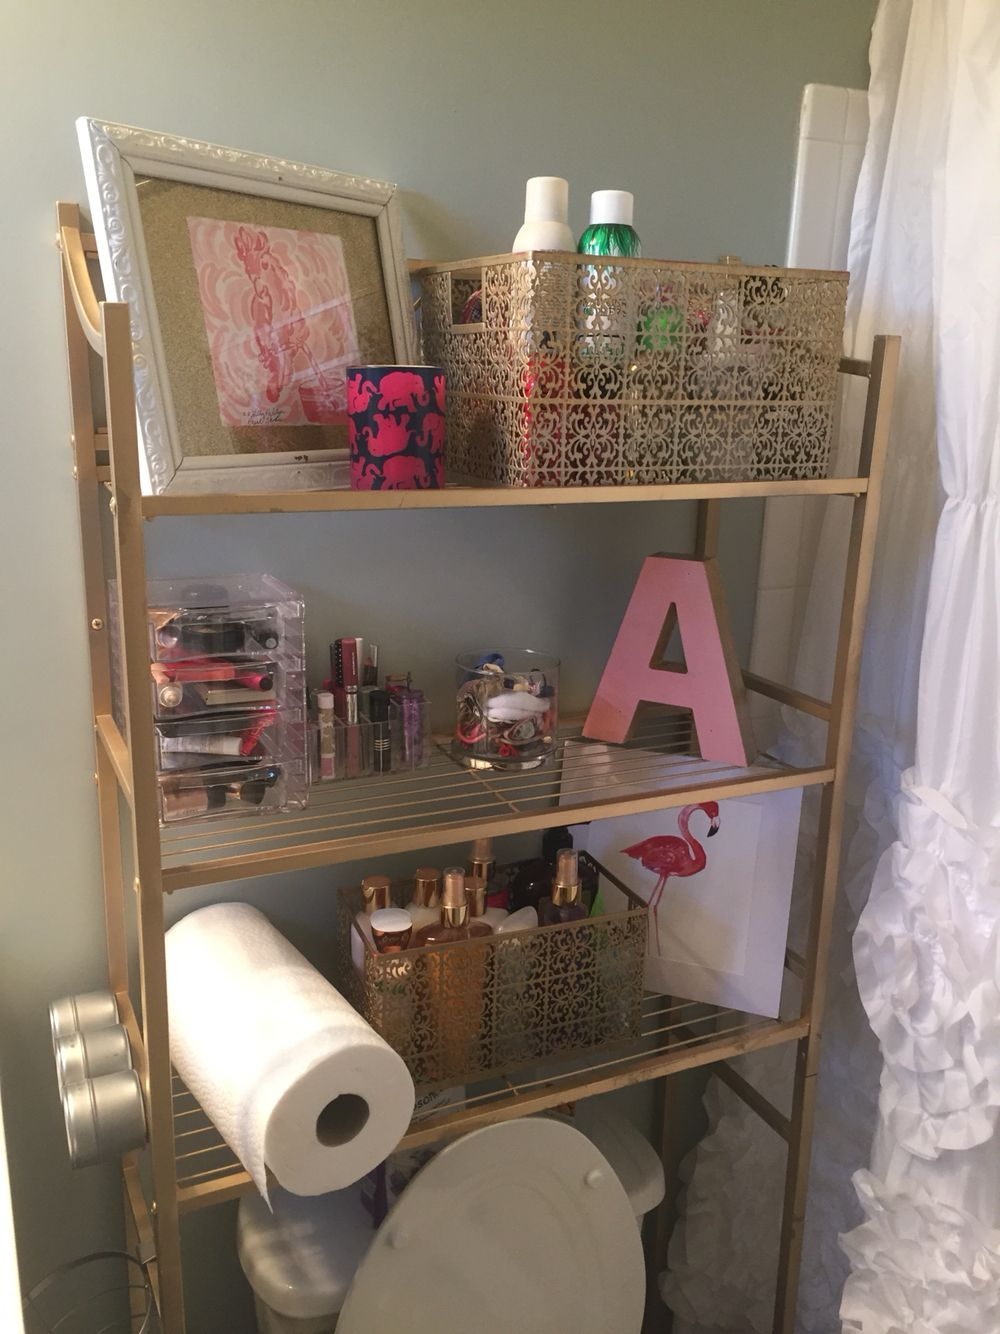 kate spade inspired bathroom organization/ lilly pulitzer bathroom